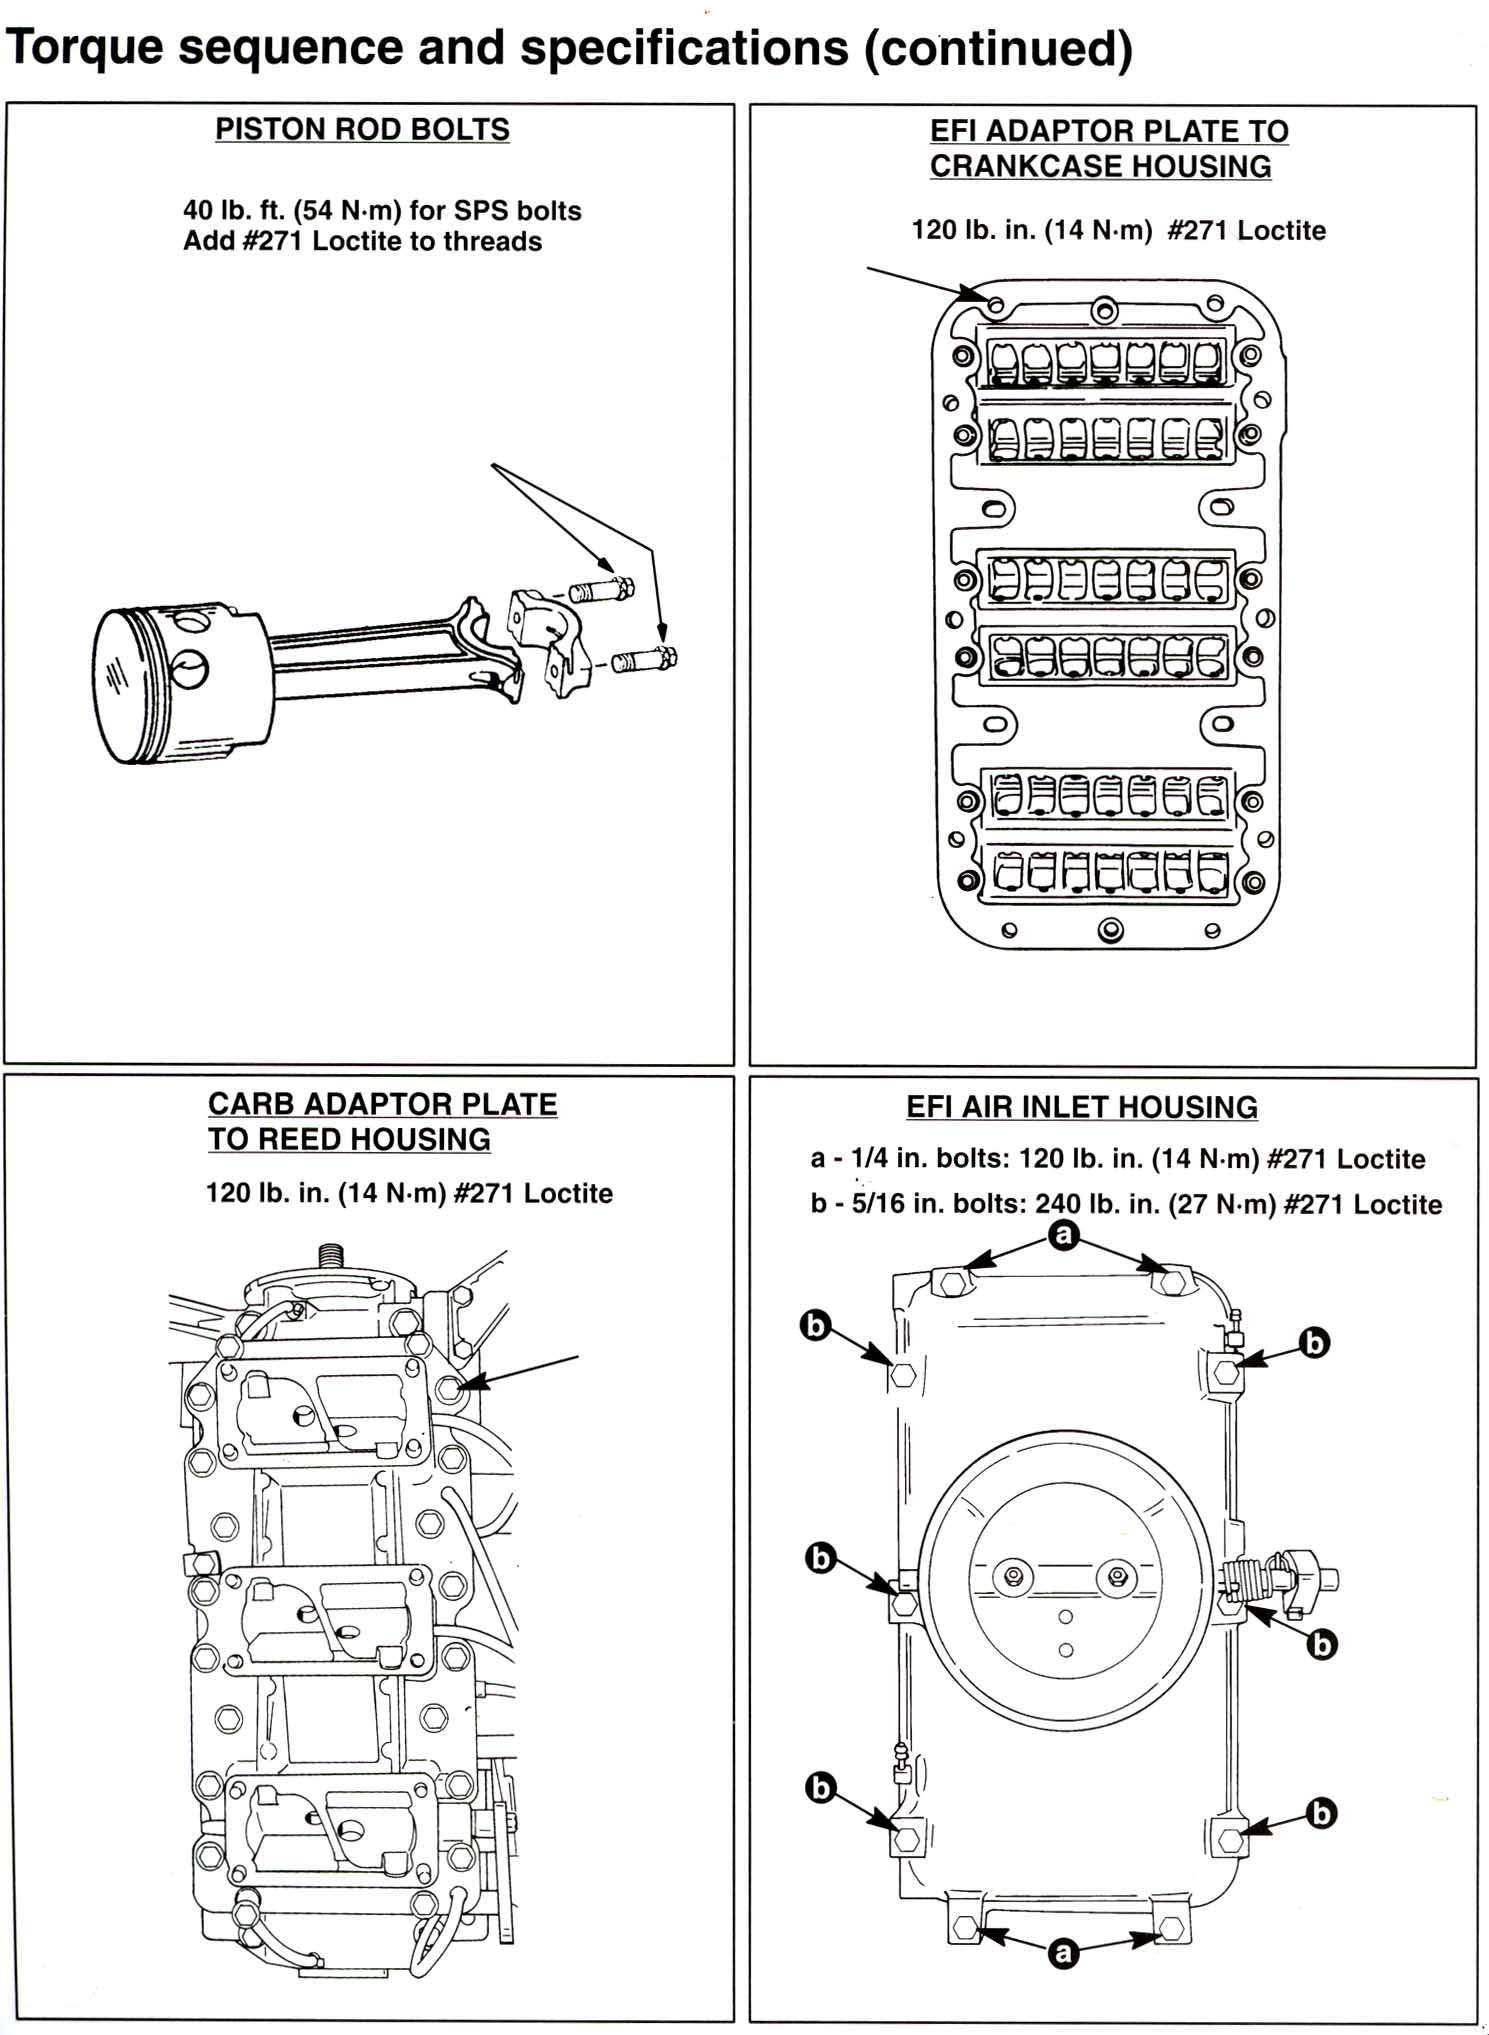 Inline 4 Cylinder Mercruiser Coil Wiring Diagram | Wiring ... on 3.0 mercruiser solenoid, 3.0 mercruiser fittings, 3.0 mercruiser air cleaner, 3.0 mercruiser harmonic balancer, 3.0 mercruiser fuel line, 3.0 mercruiser sensor, 3.0 mercruiser coil,